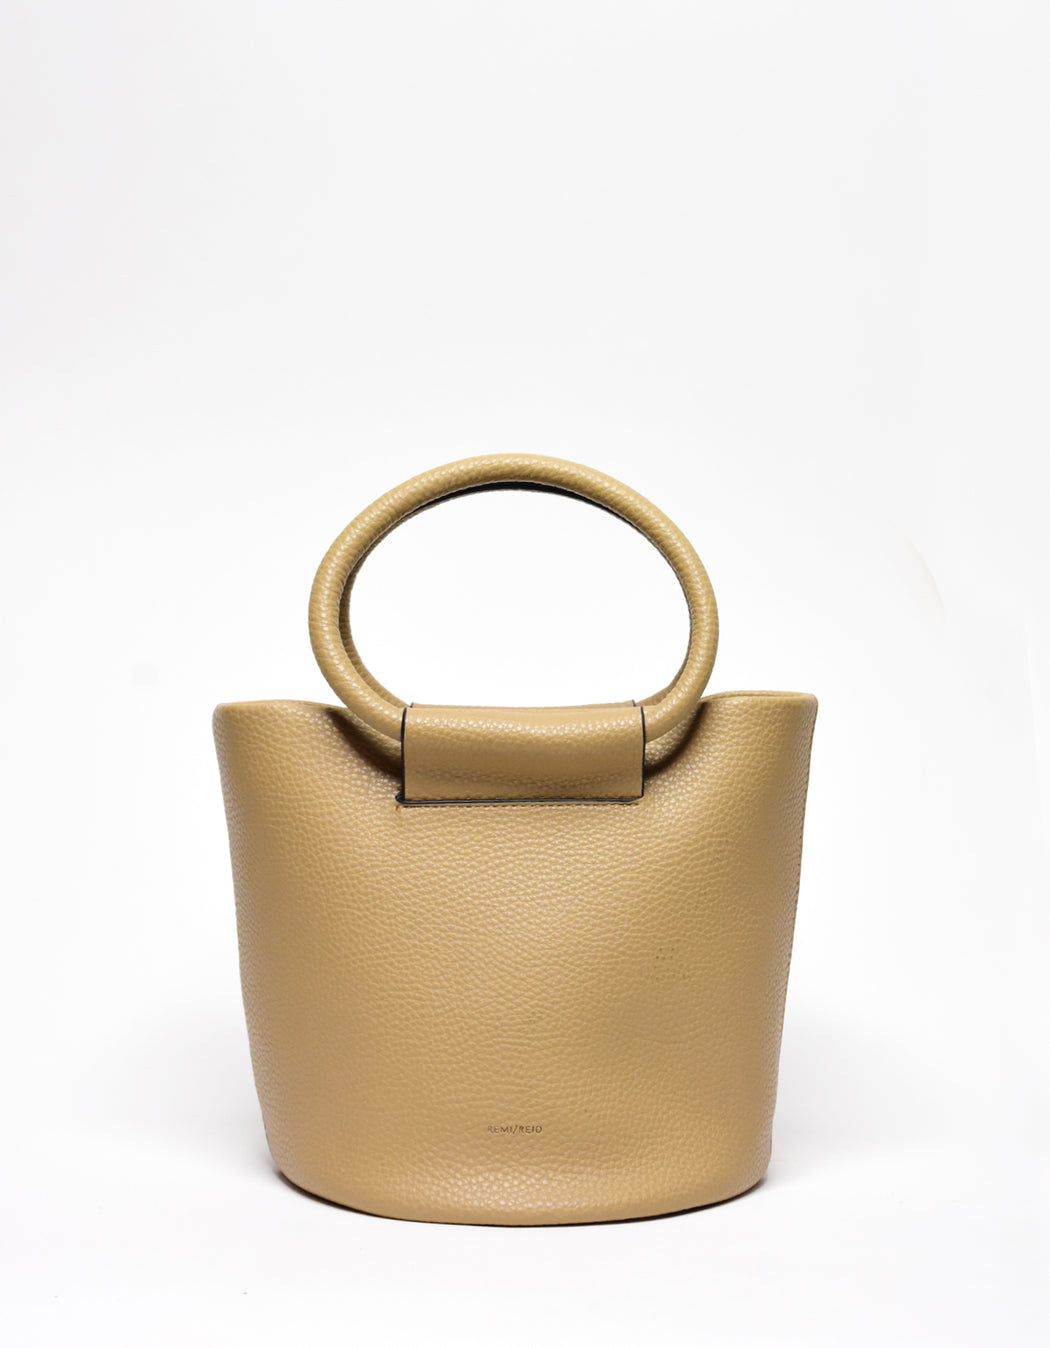 IMOGEN CROSSBODY LIGHT TAN